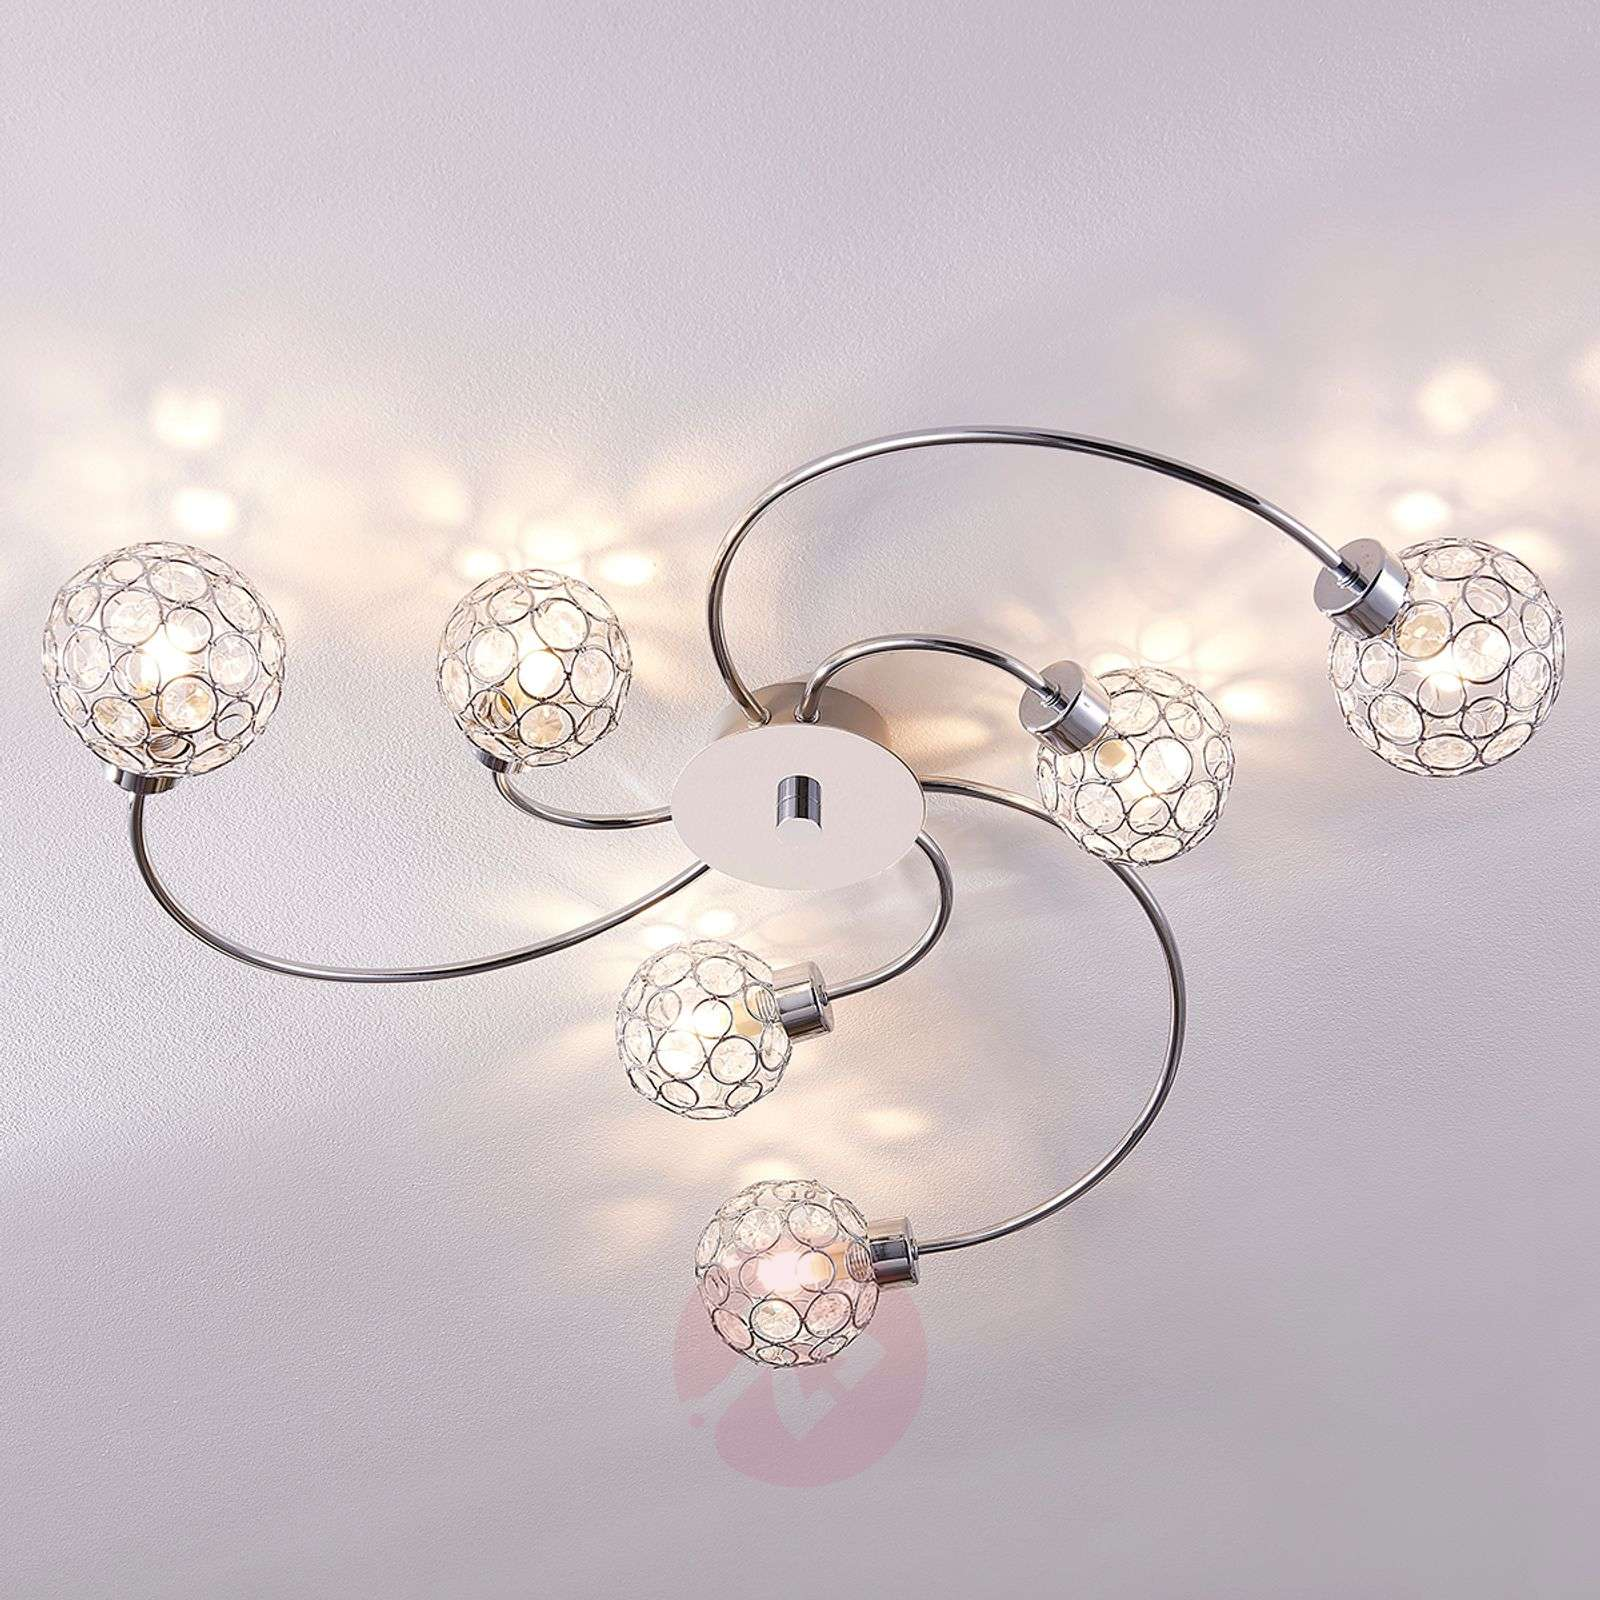 Tyron lampada LED da soffitto decorativa-9620805-013